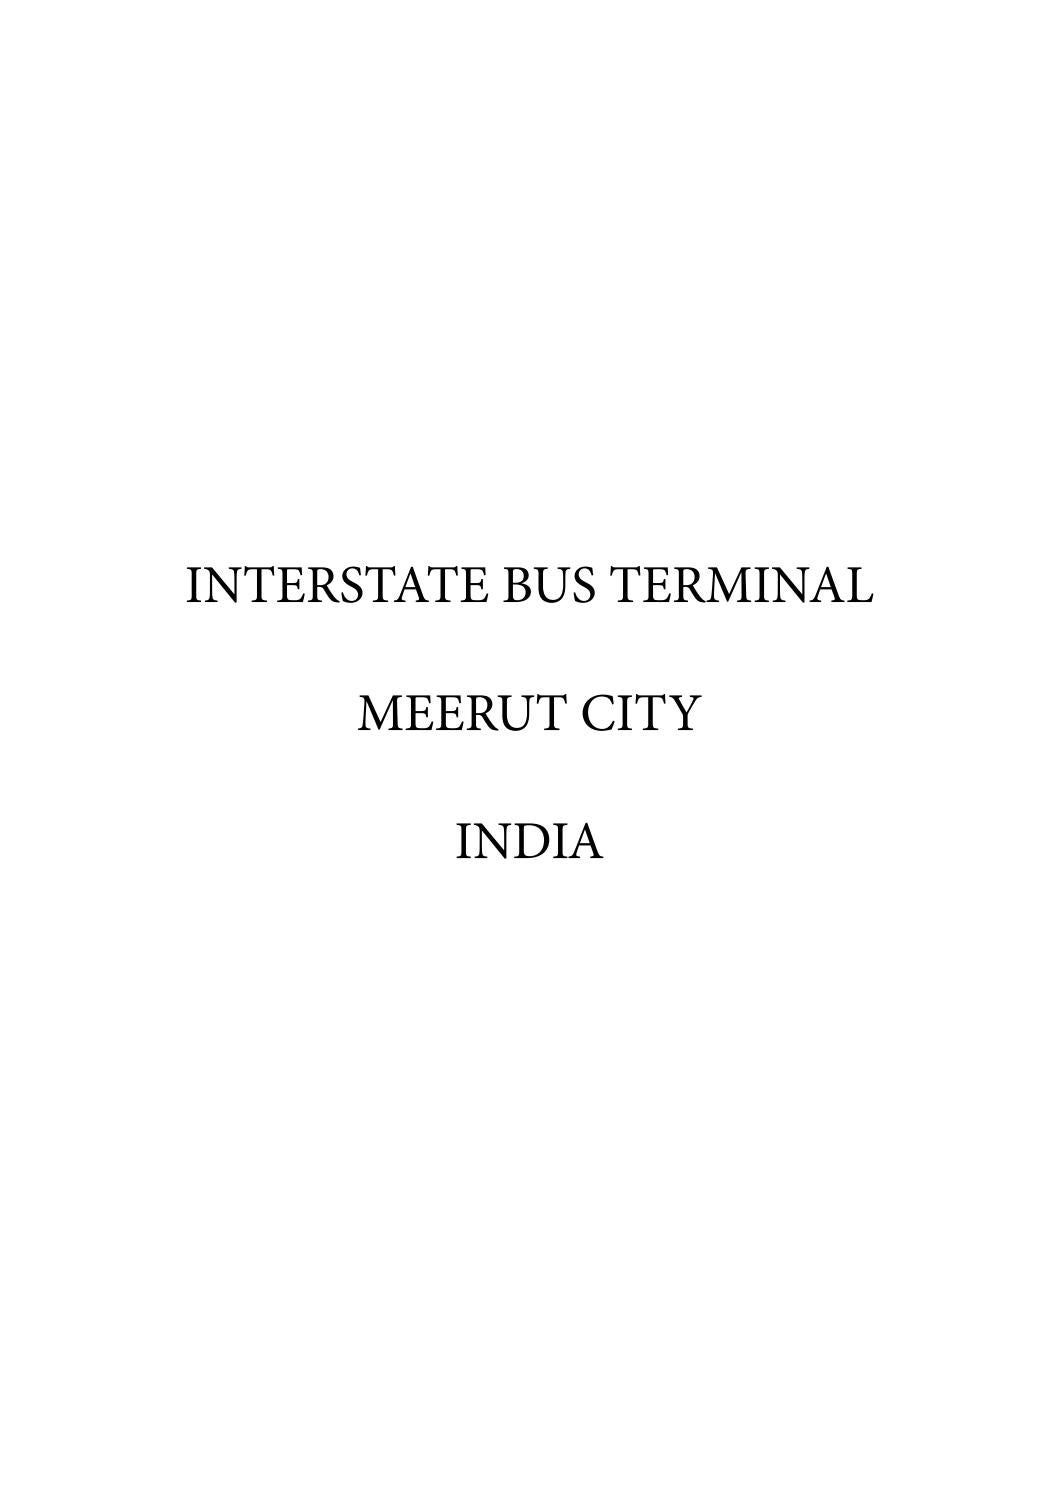 B Arch Thesis Project - ISBT Meerut City by Humair Subhani